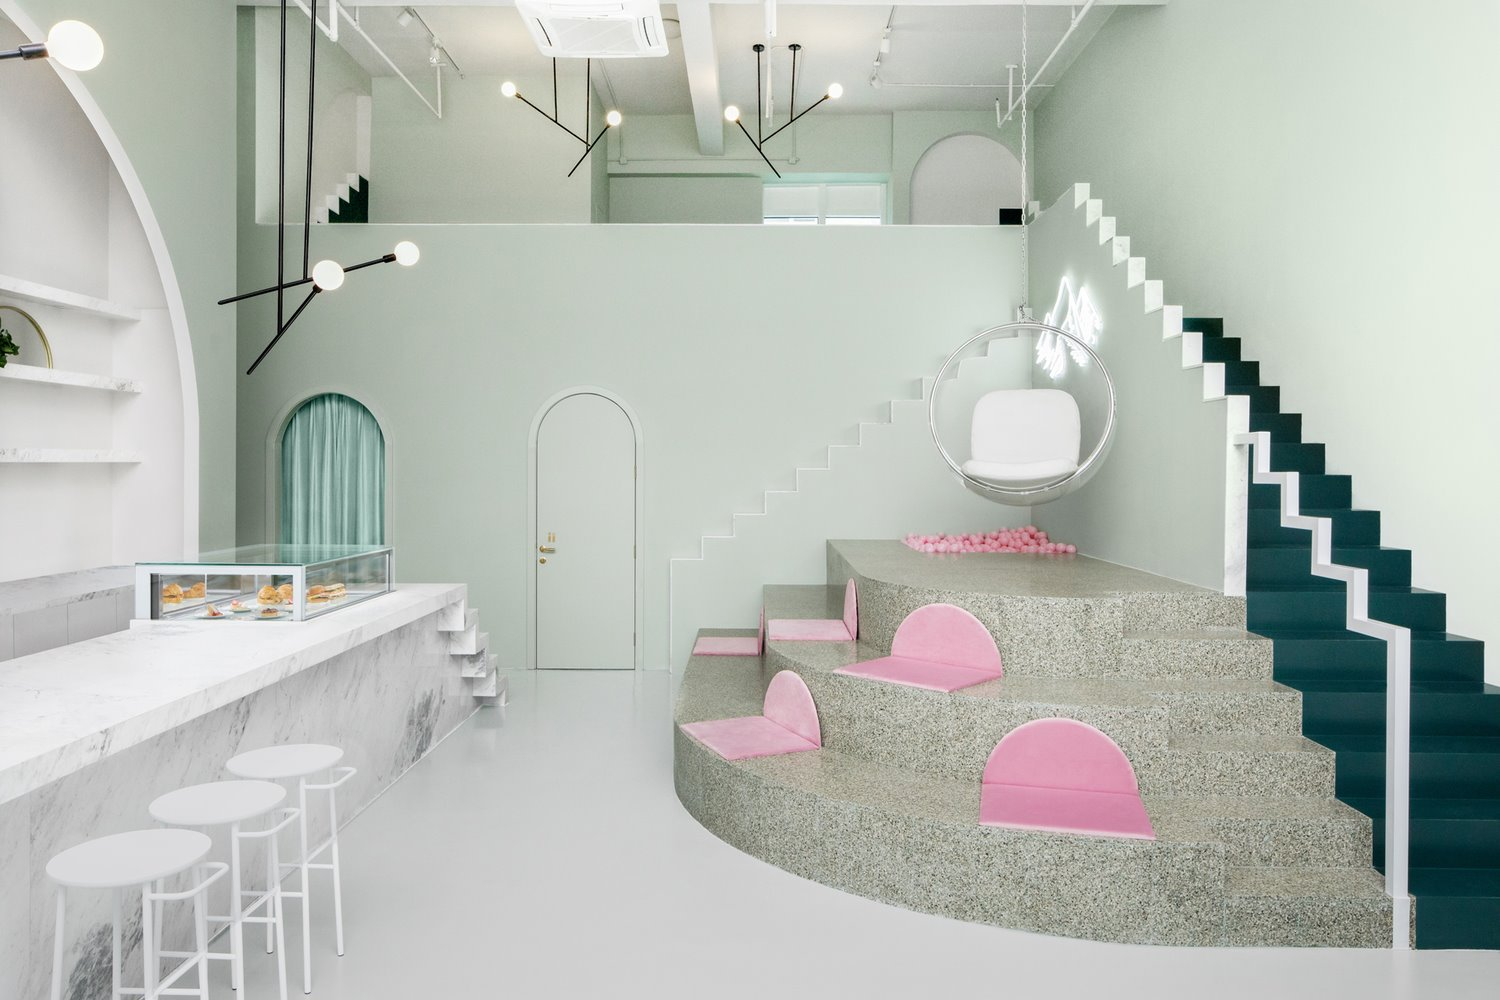 the budapest cafe en tonos neutros y pastel